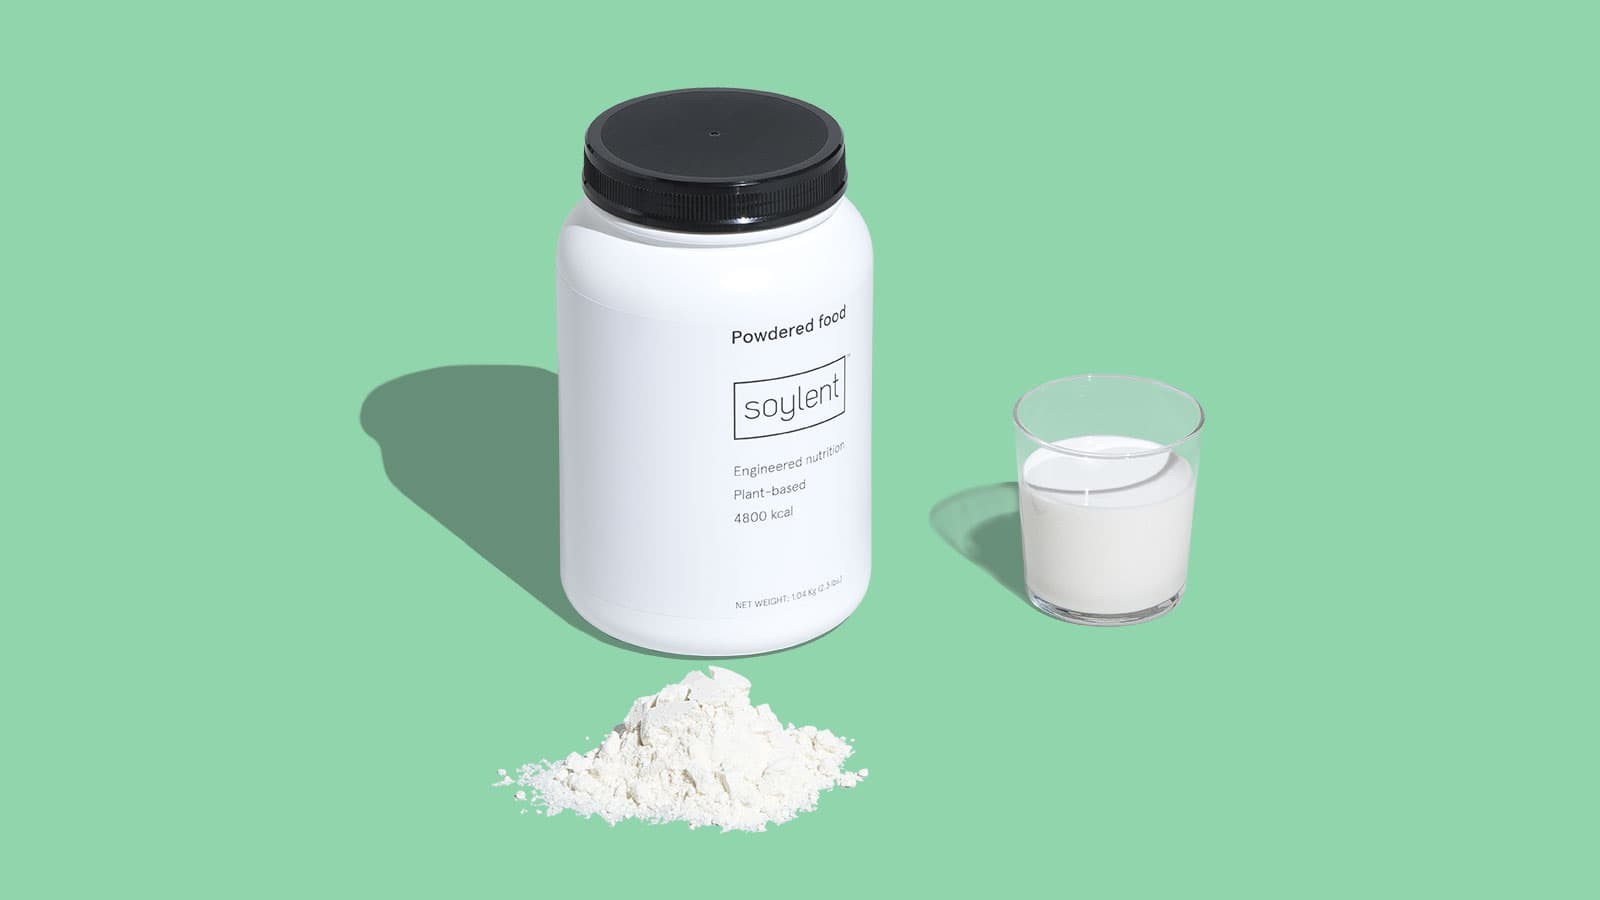 Soylent Powder Tub next to a glass of mixed Soylent Powder and infront of a mound of Soylent Powder.